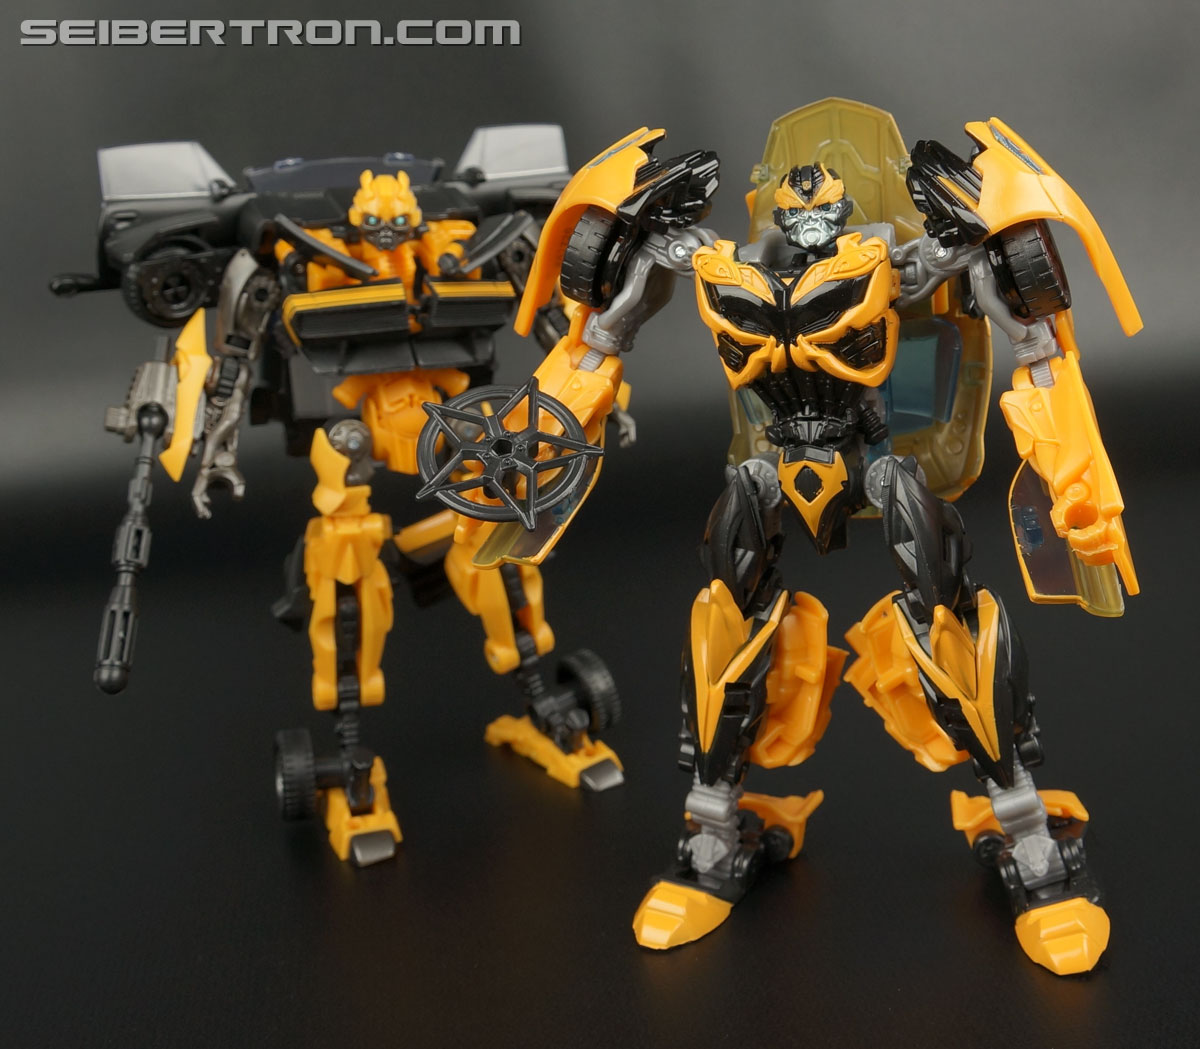 Transformers Age of Extinction: Generations Bumblebee (Image #184 of 190)